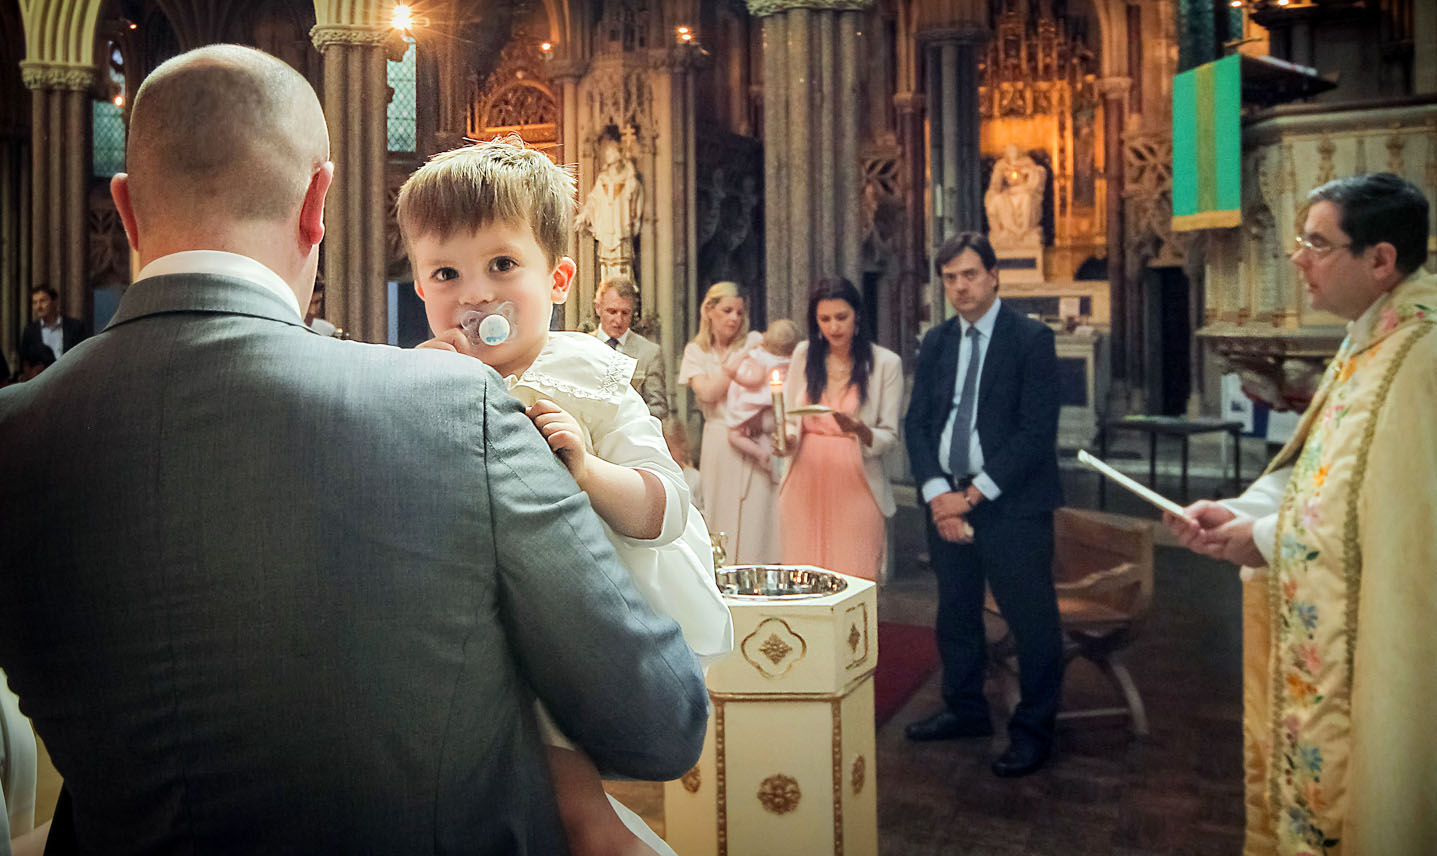 Christening photographer captures a candid after the baptism